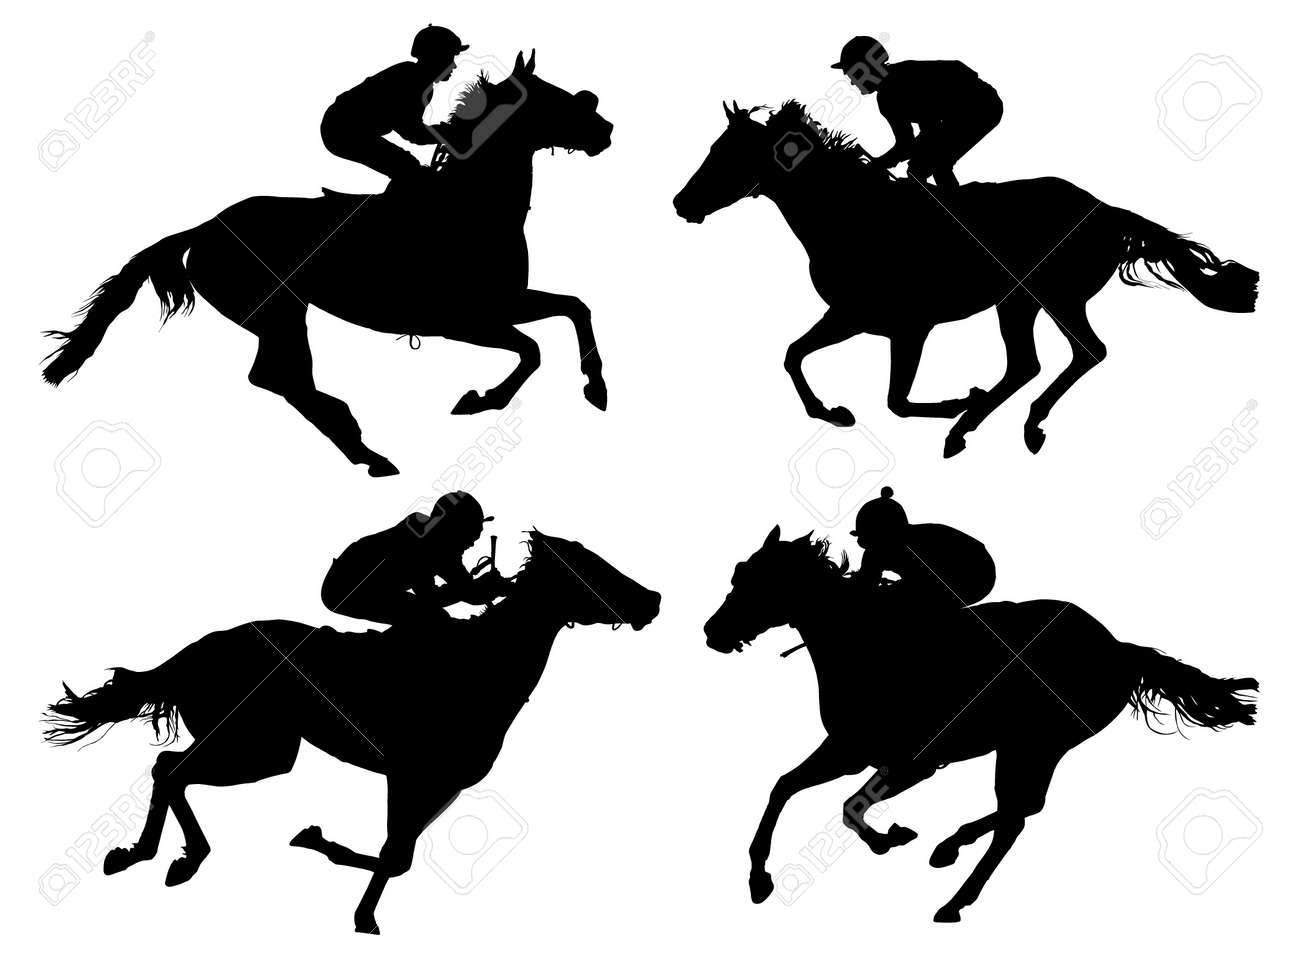 Horse Silhouette Horse Racing Silhouette on